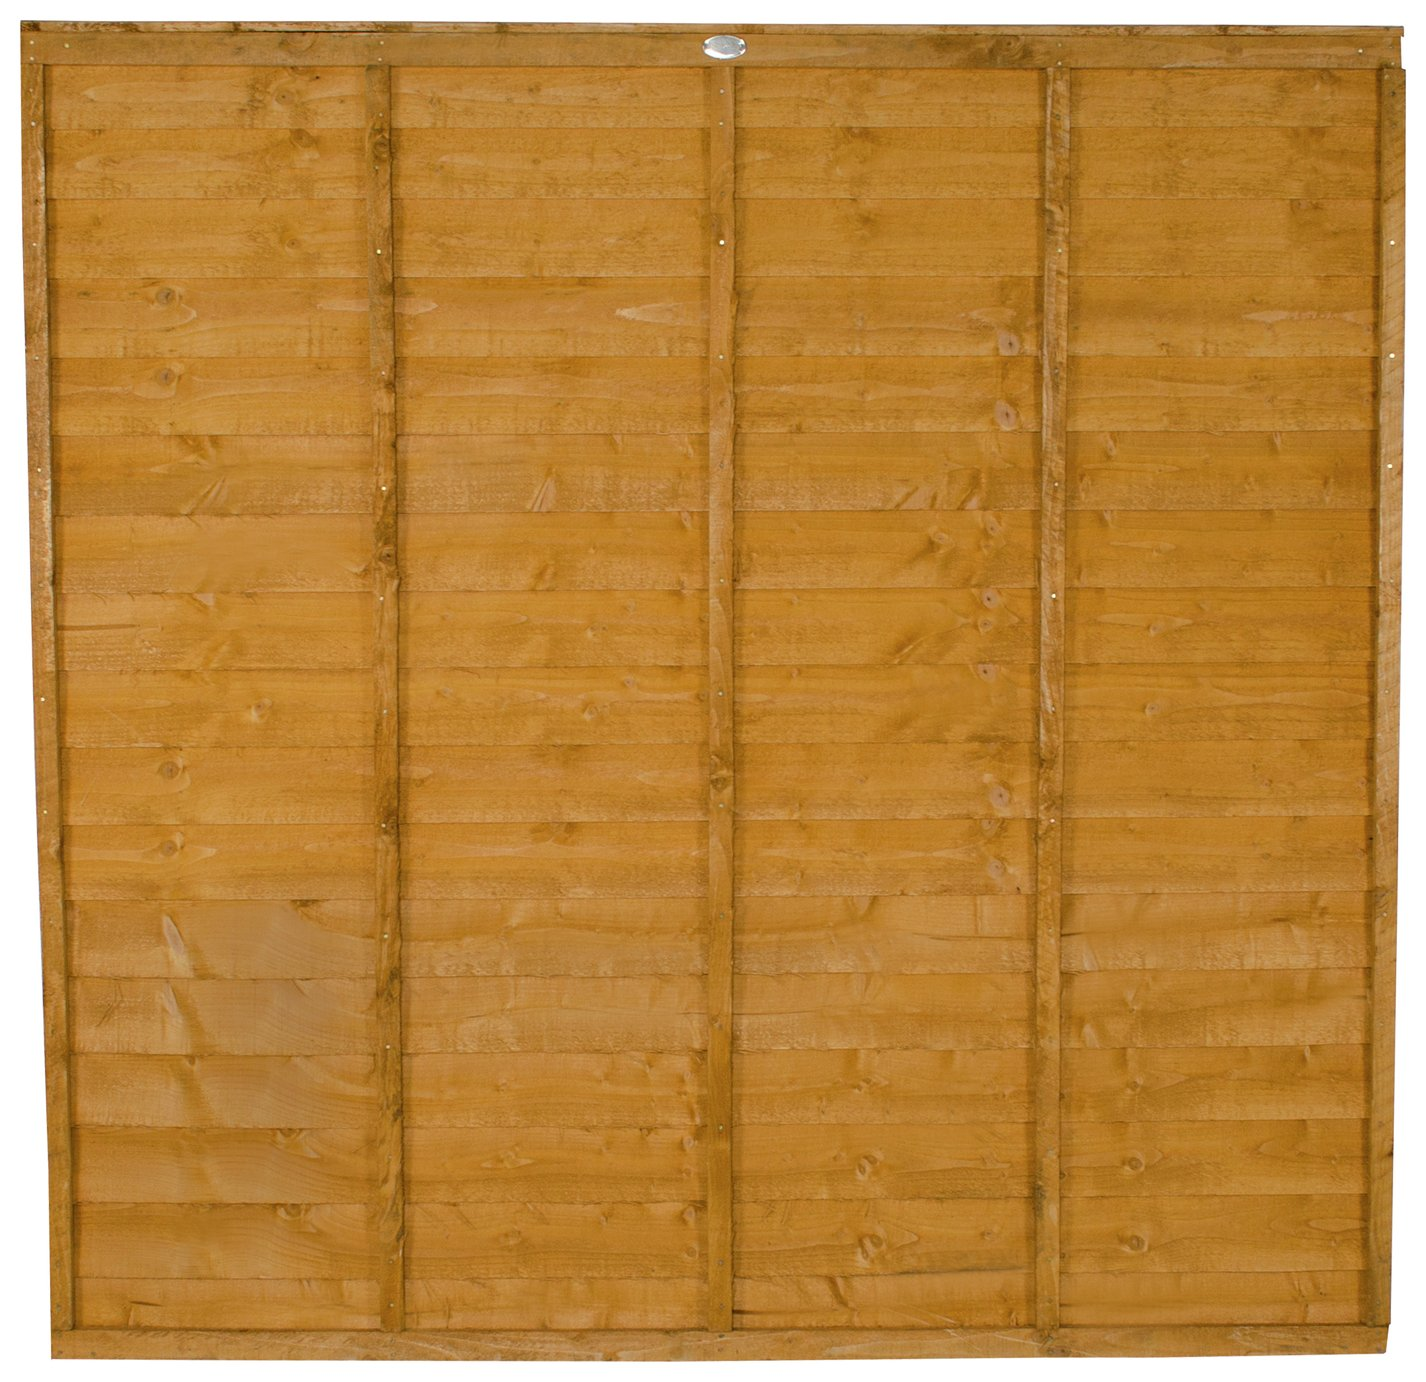 Forest 6ft (1.83m) Premier Lap Fence Panel - Pack of 3